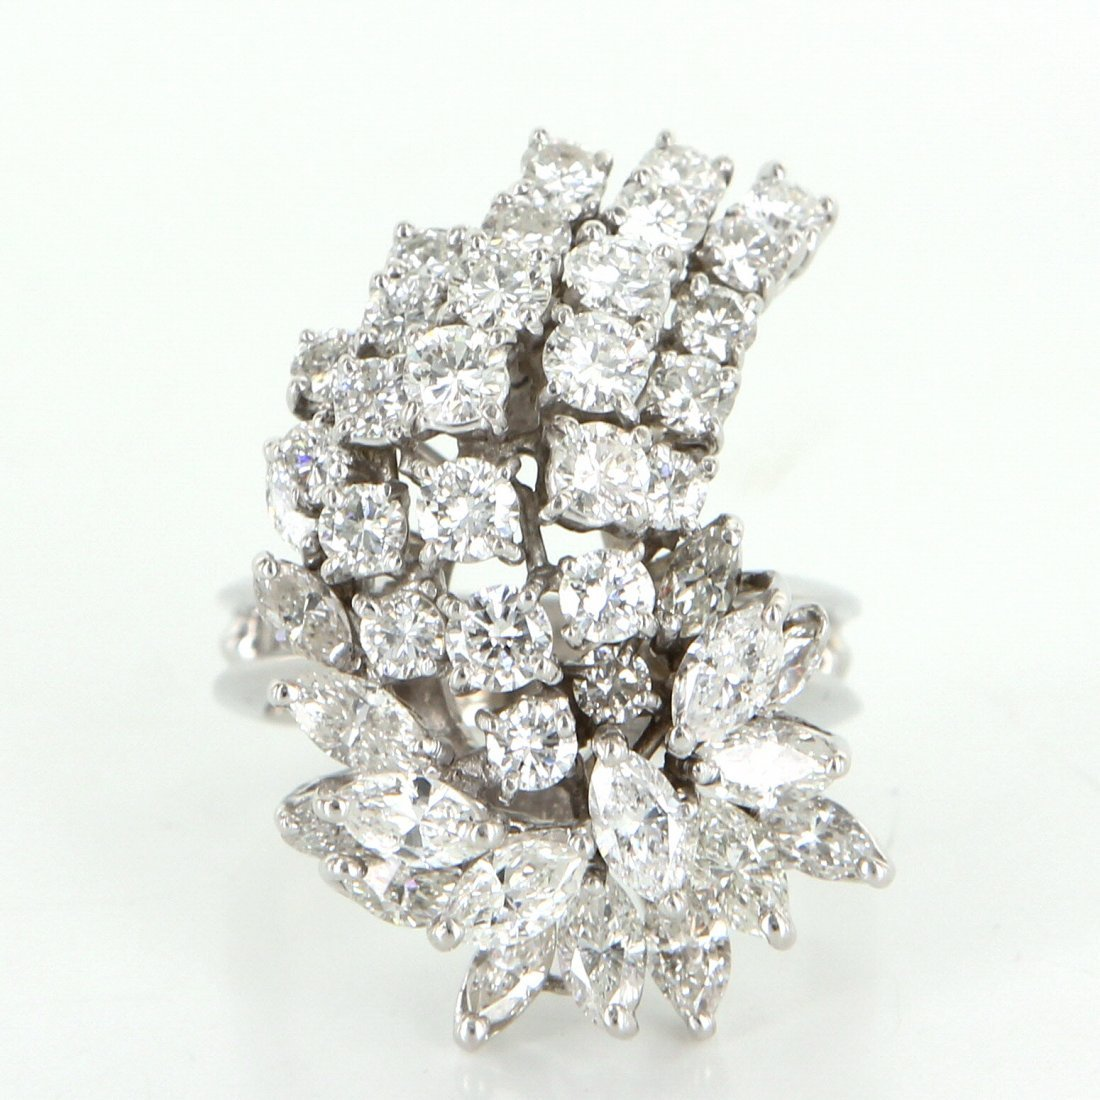 3.52ct Diamond Cluster Cocktail Ring 14k White Gold